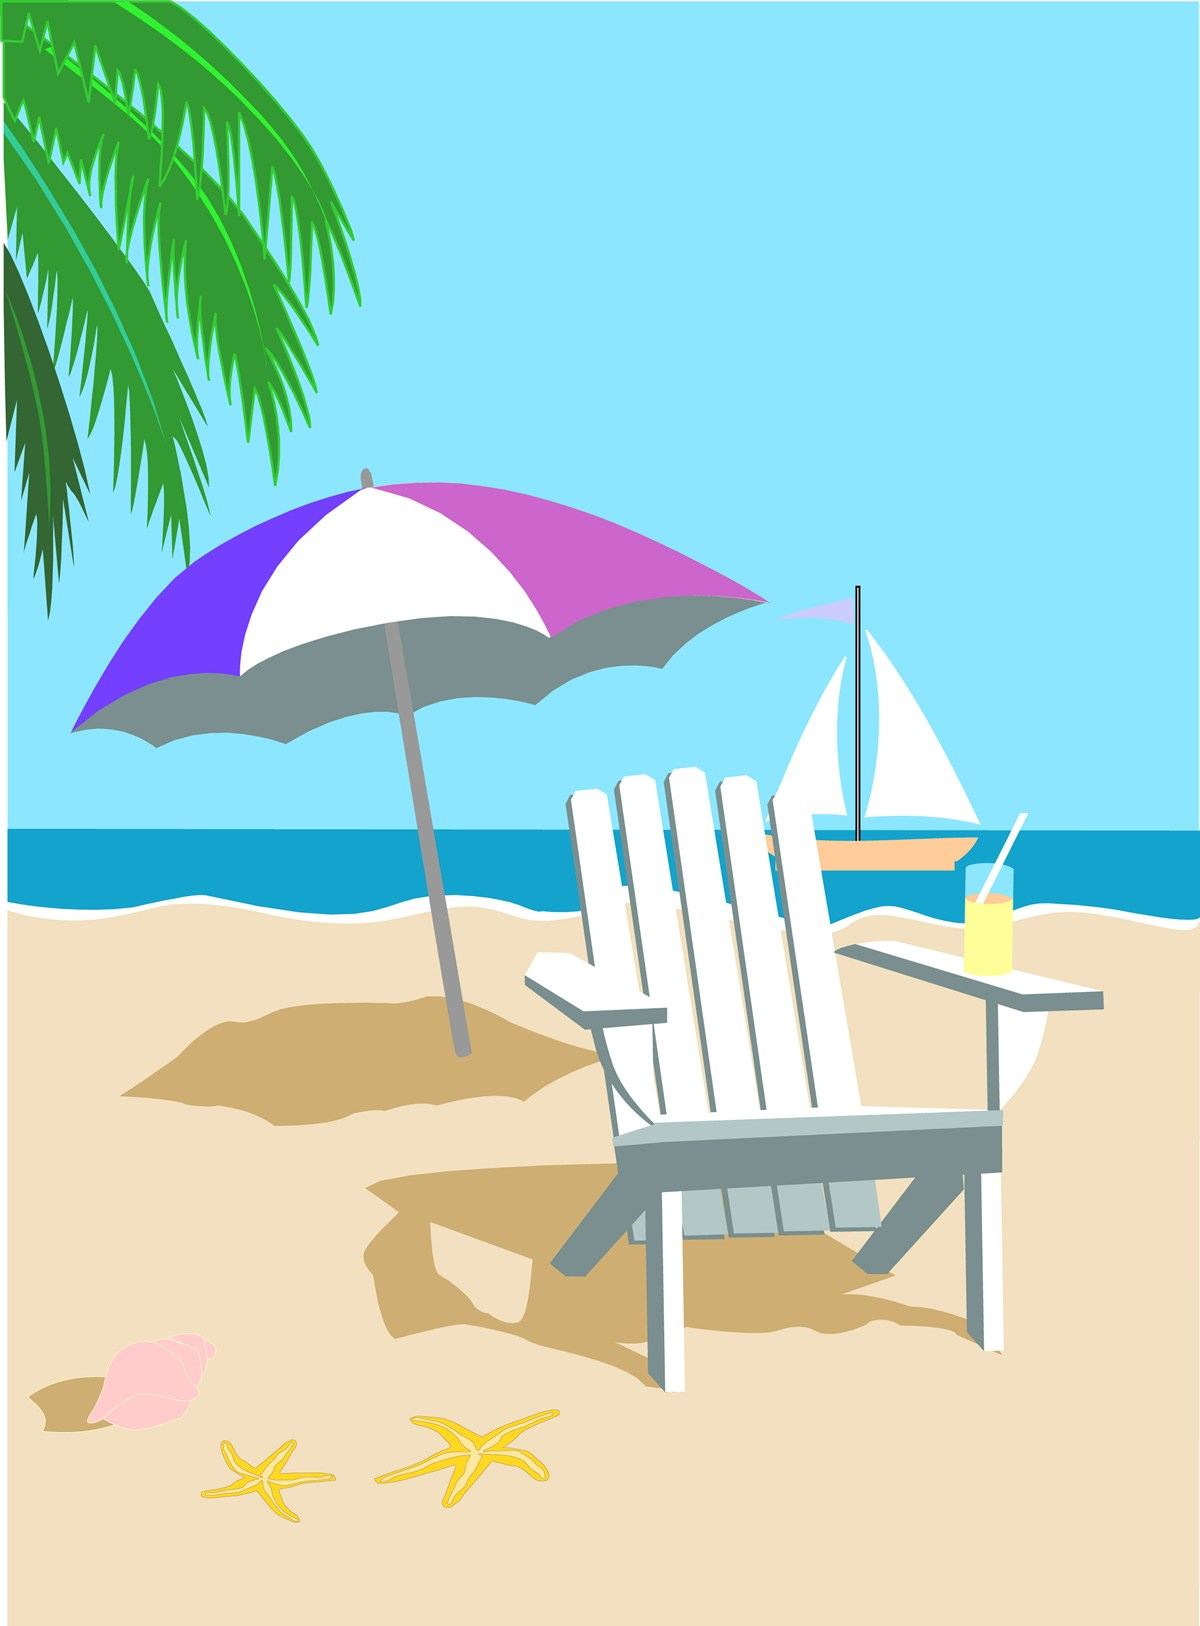 Cartoon beach scene clipart 4 » Clipart Portal.